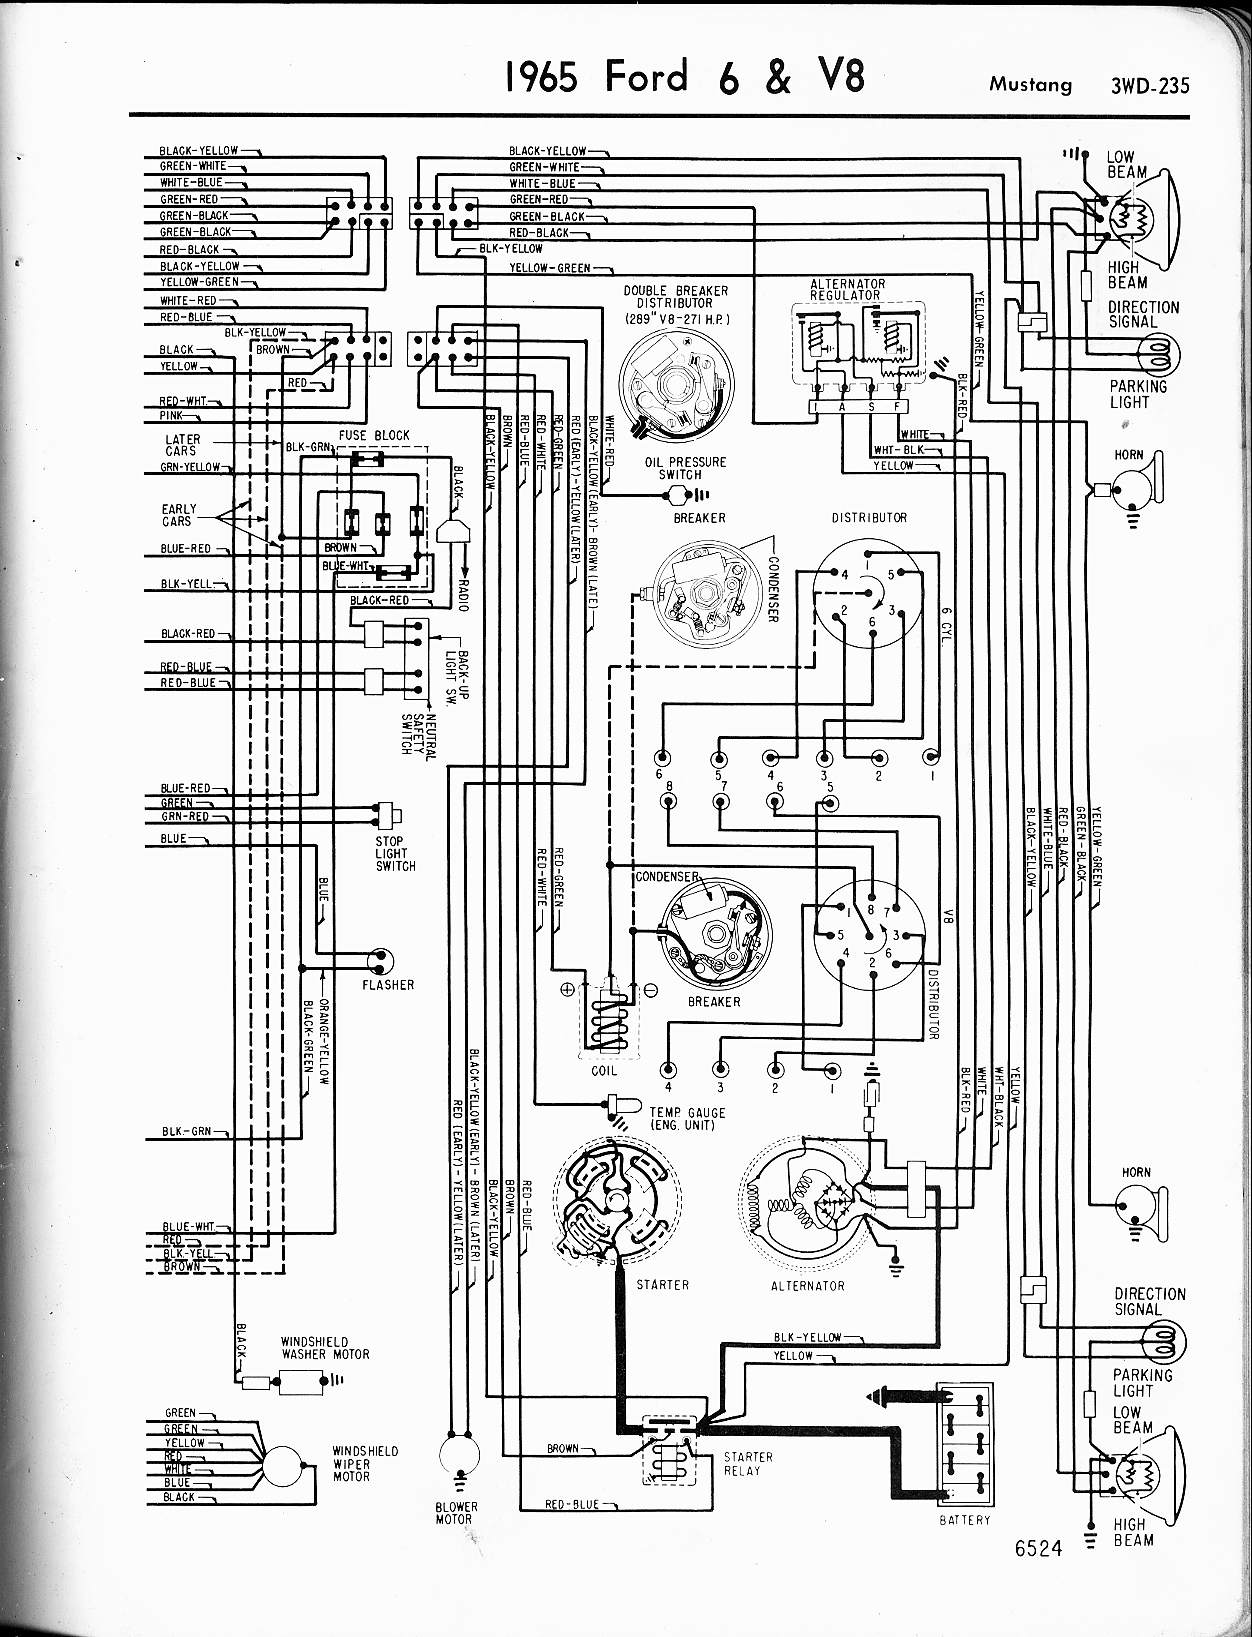 Outstanding 1965 Ford Wiring Schematic Wiring Diagram Database Wiring Cloud Hisonuggs Outletorg